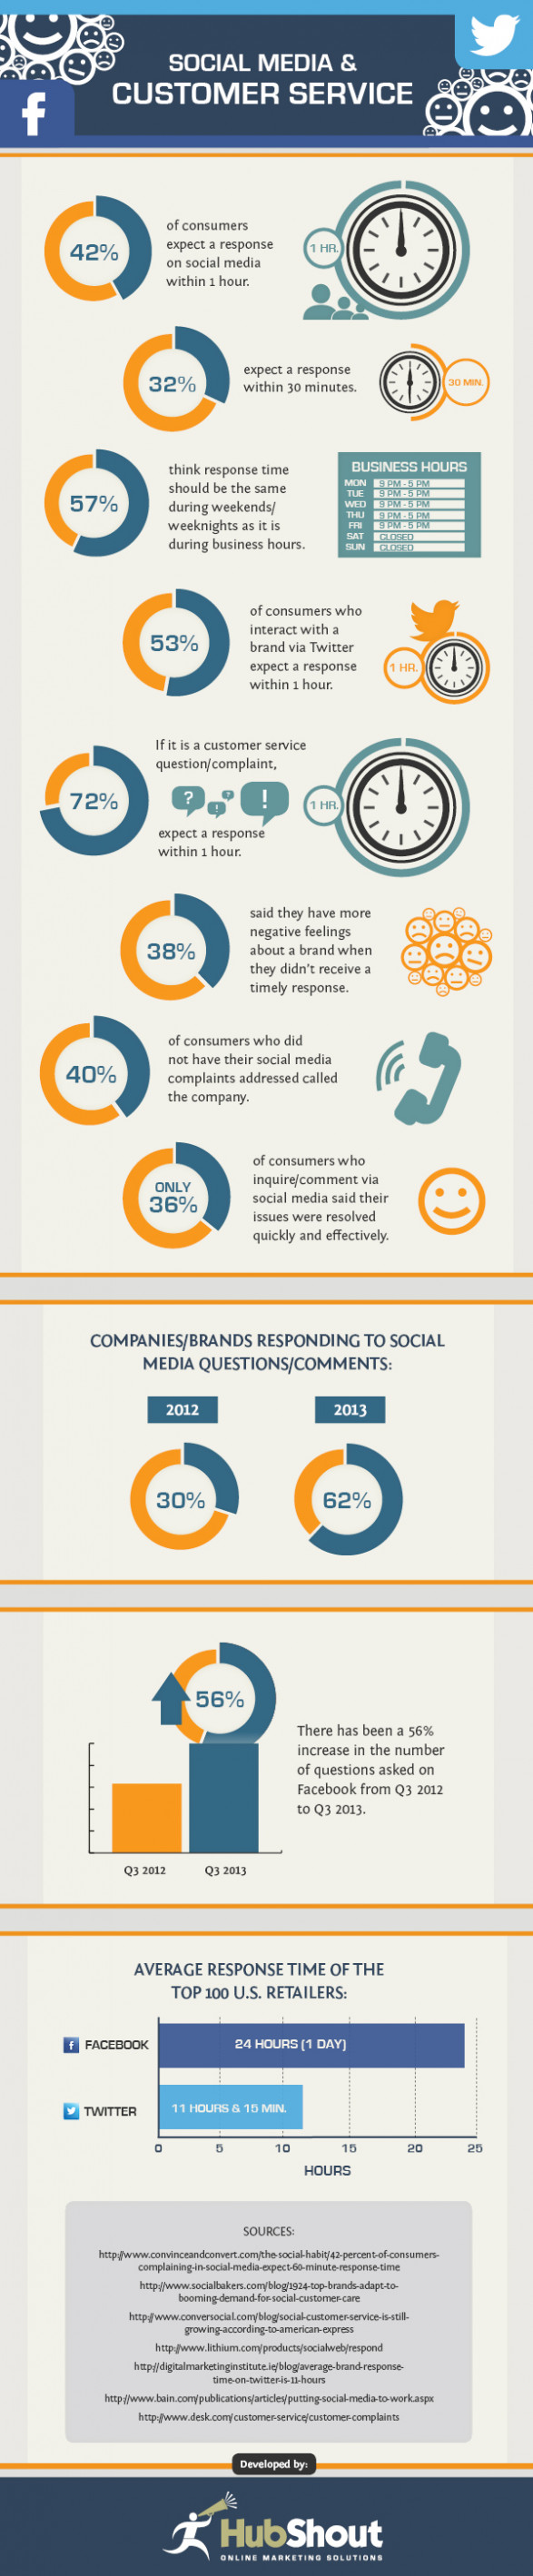 The Impact of Social Media on Customer Service